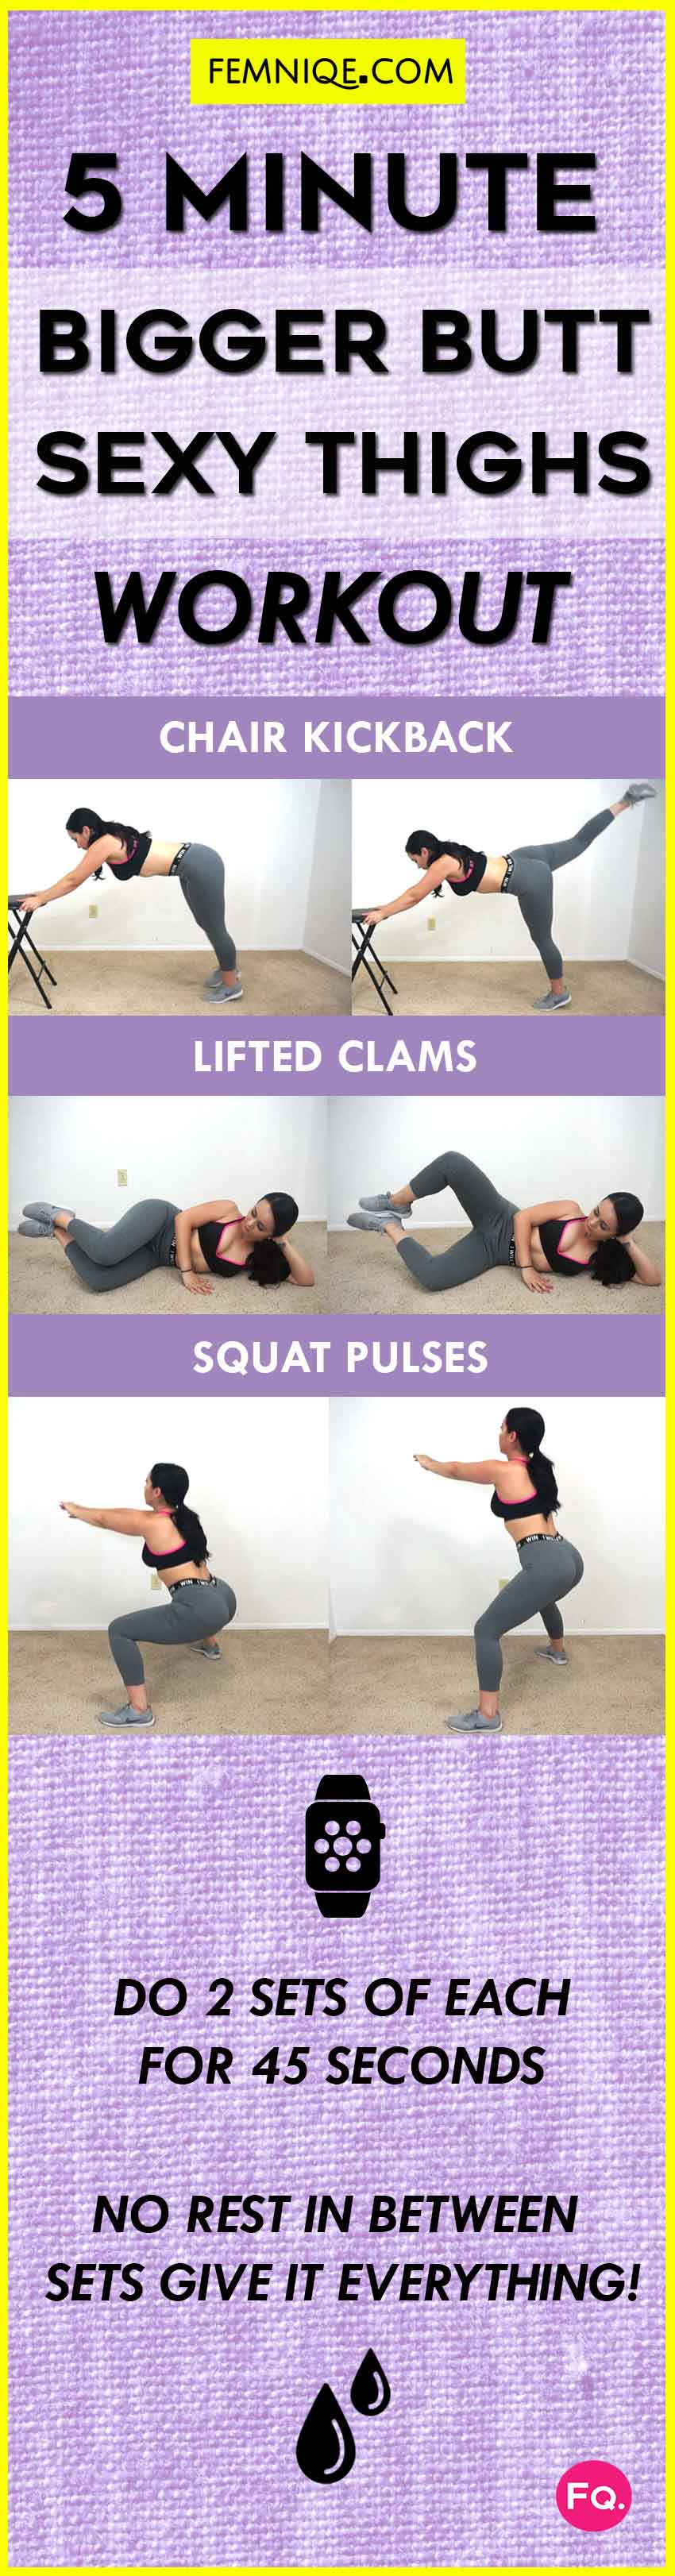 5 Minute Bigger Butt and Thigh Workout CHART